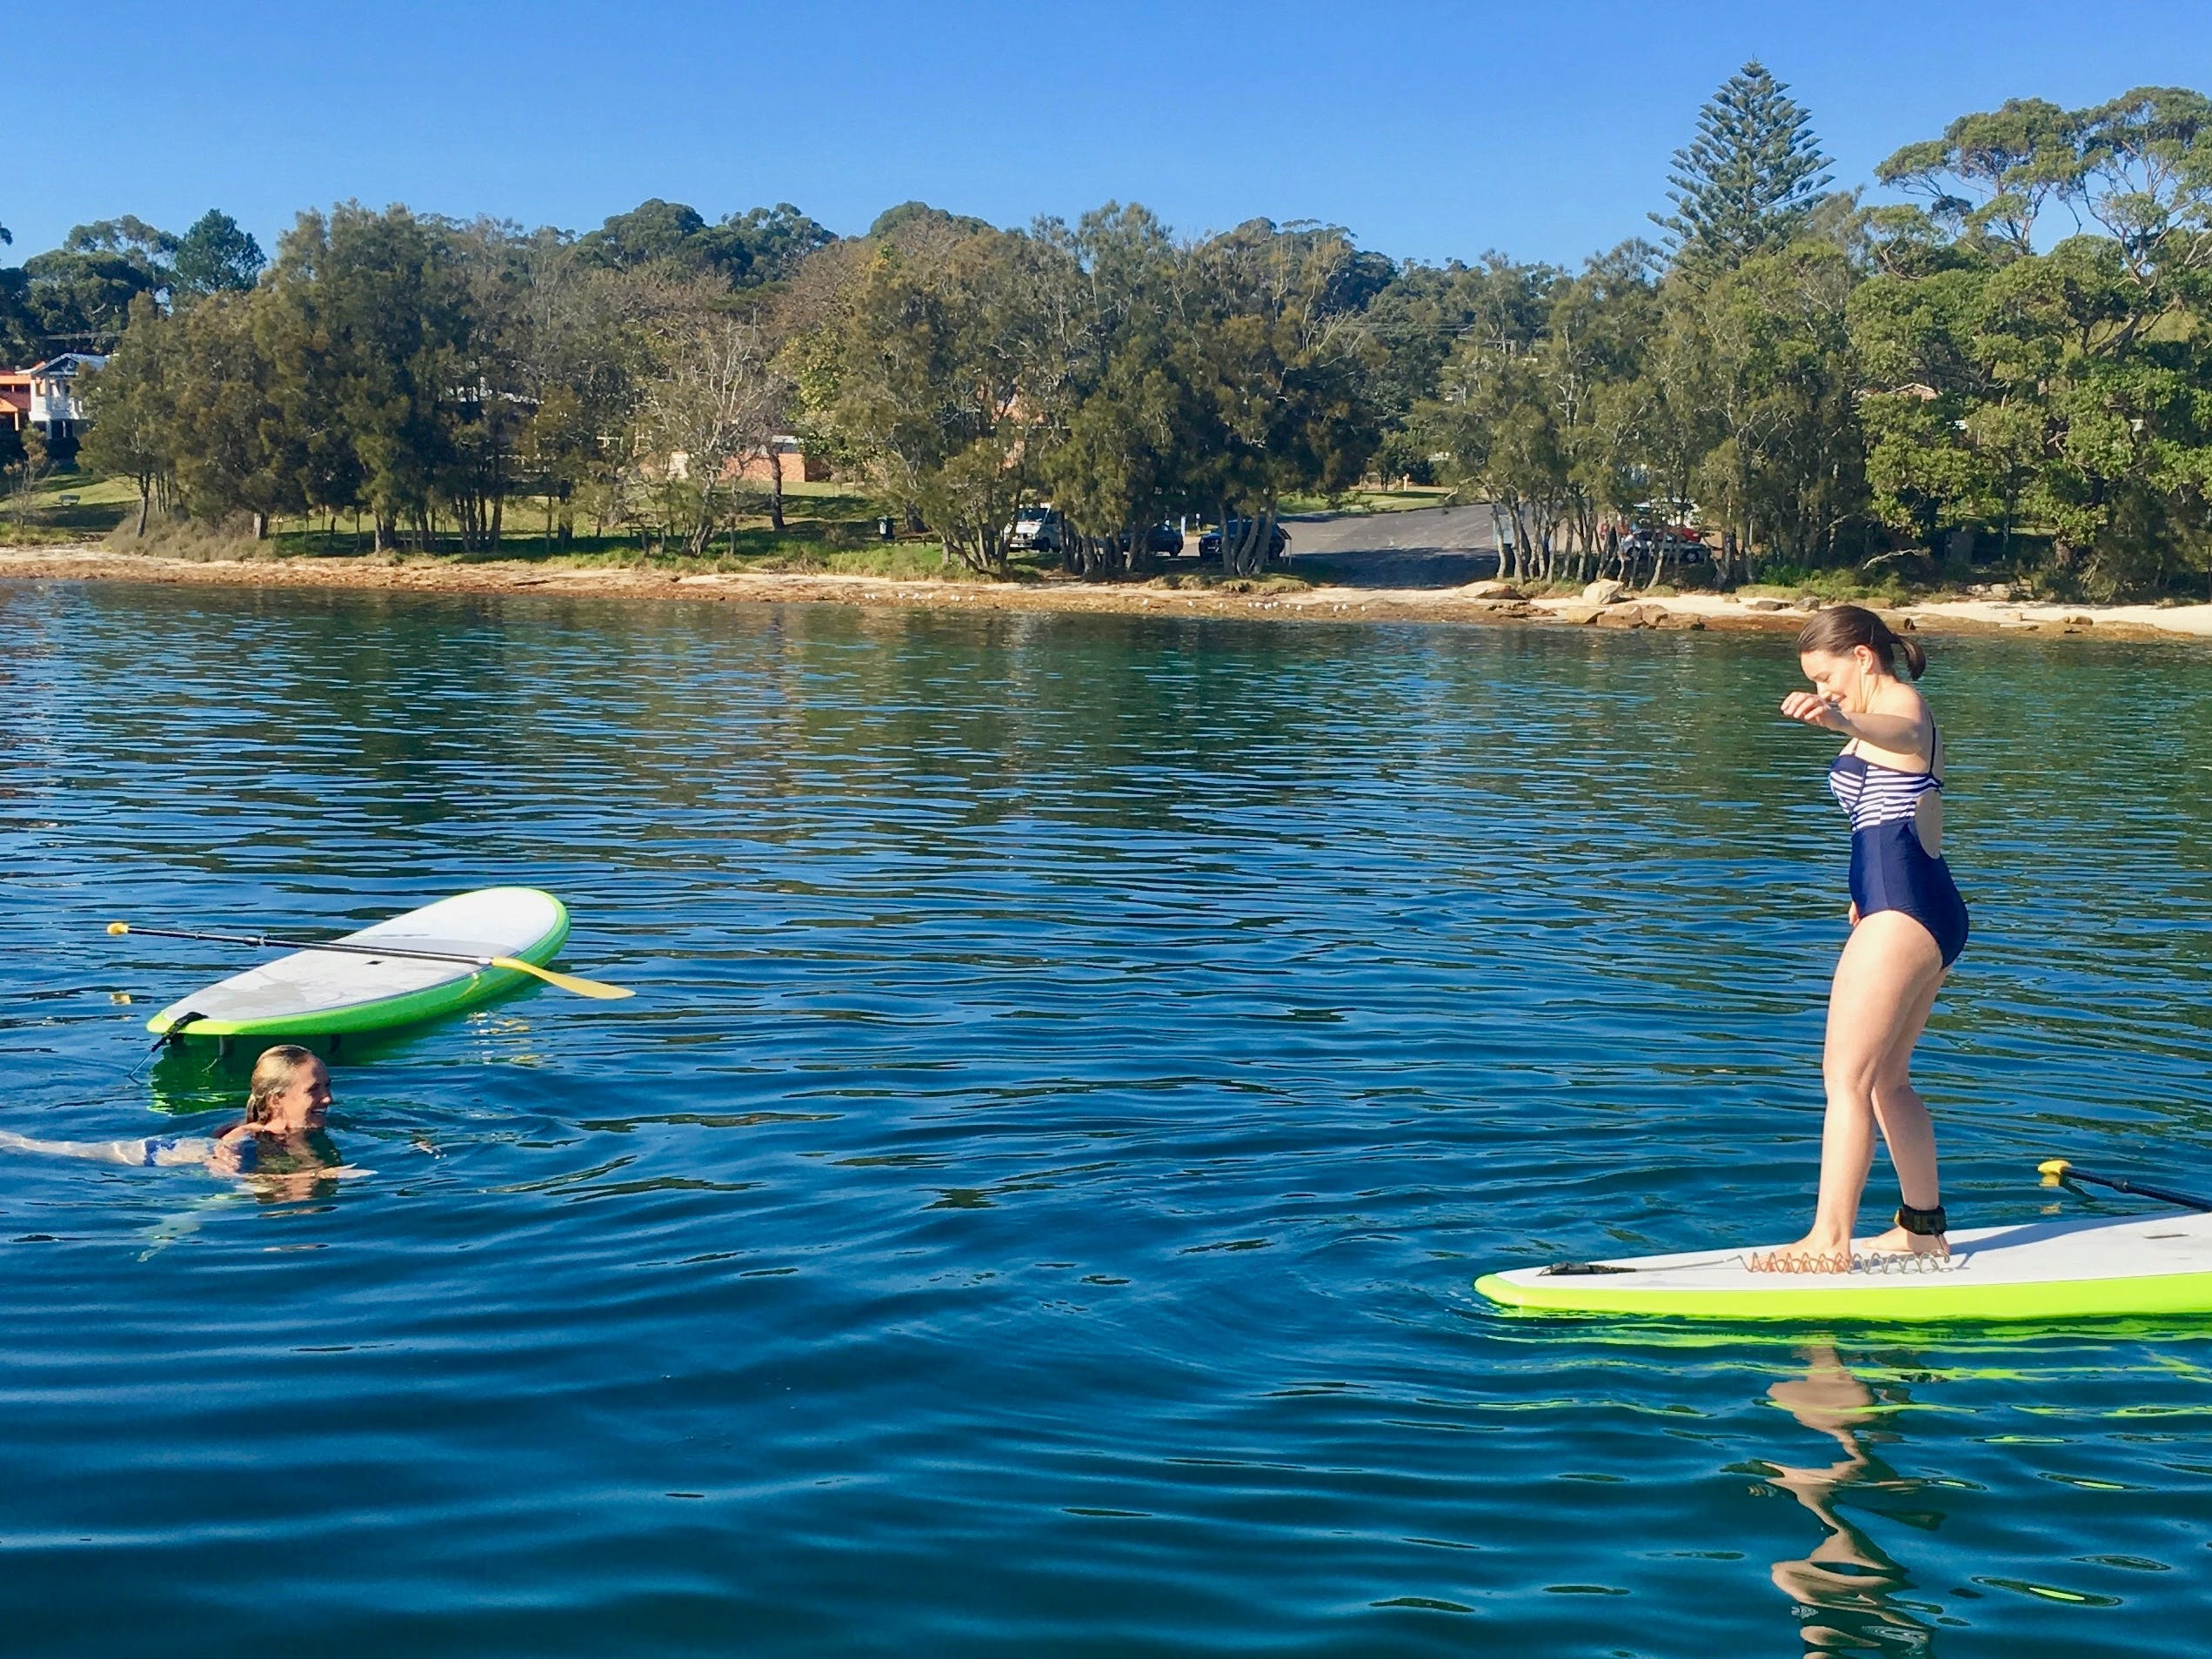 A reverse surf stance before the big splash, great paddle girls you deserve a dip to cool down.